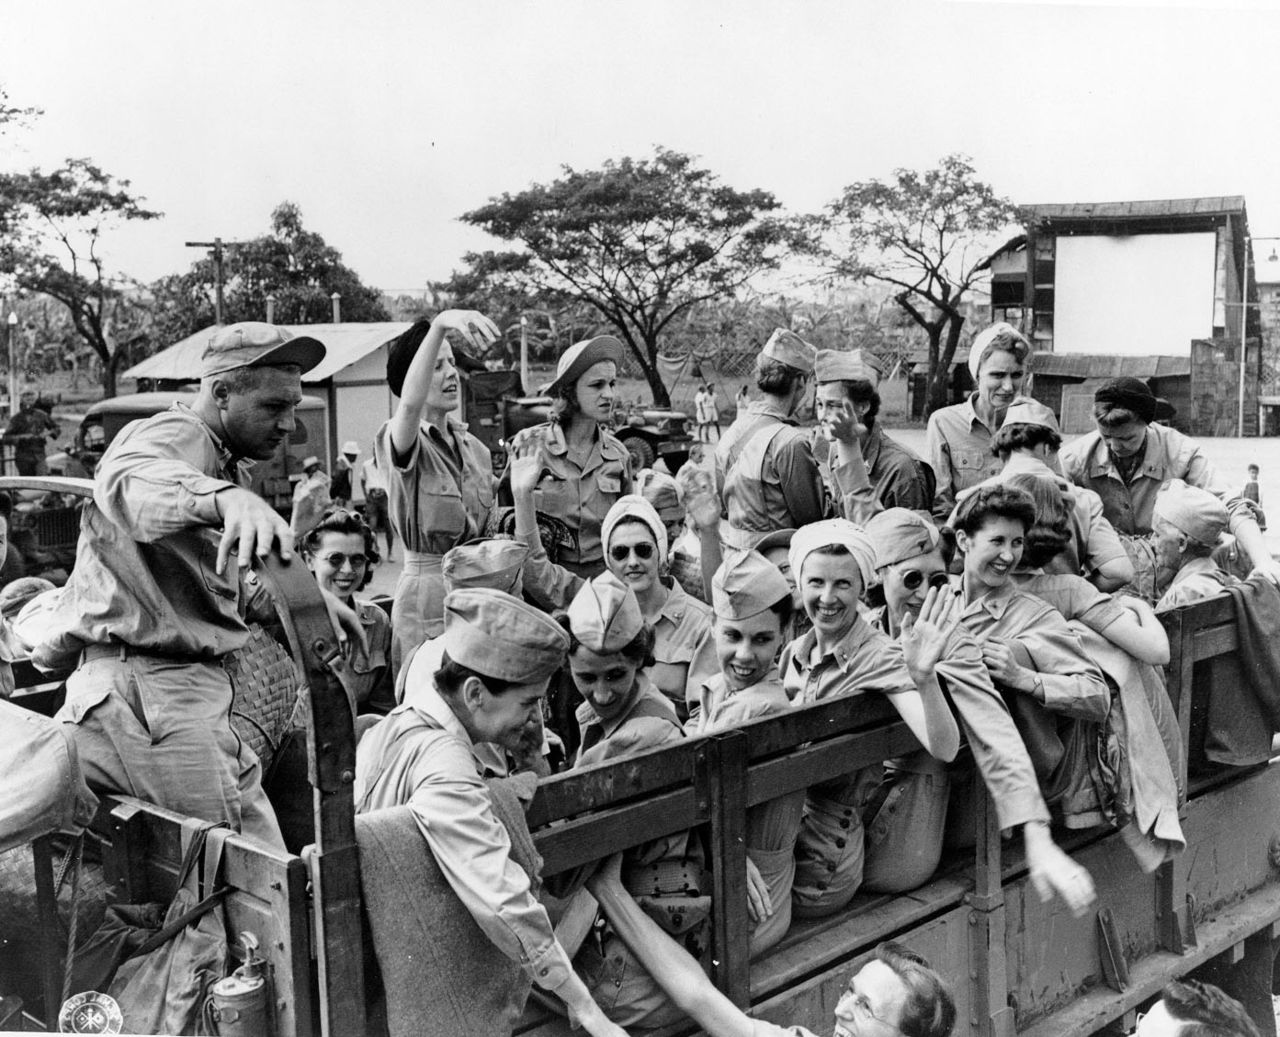 1280px-Army_nurses_rescued_from_Santo_Tomas_1945g.jpg